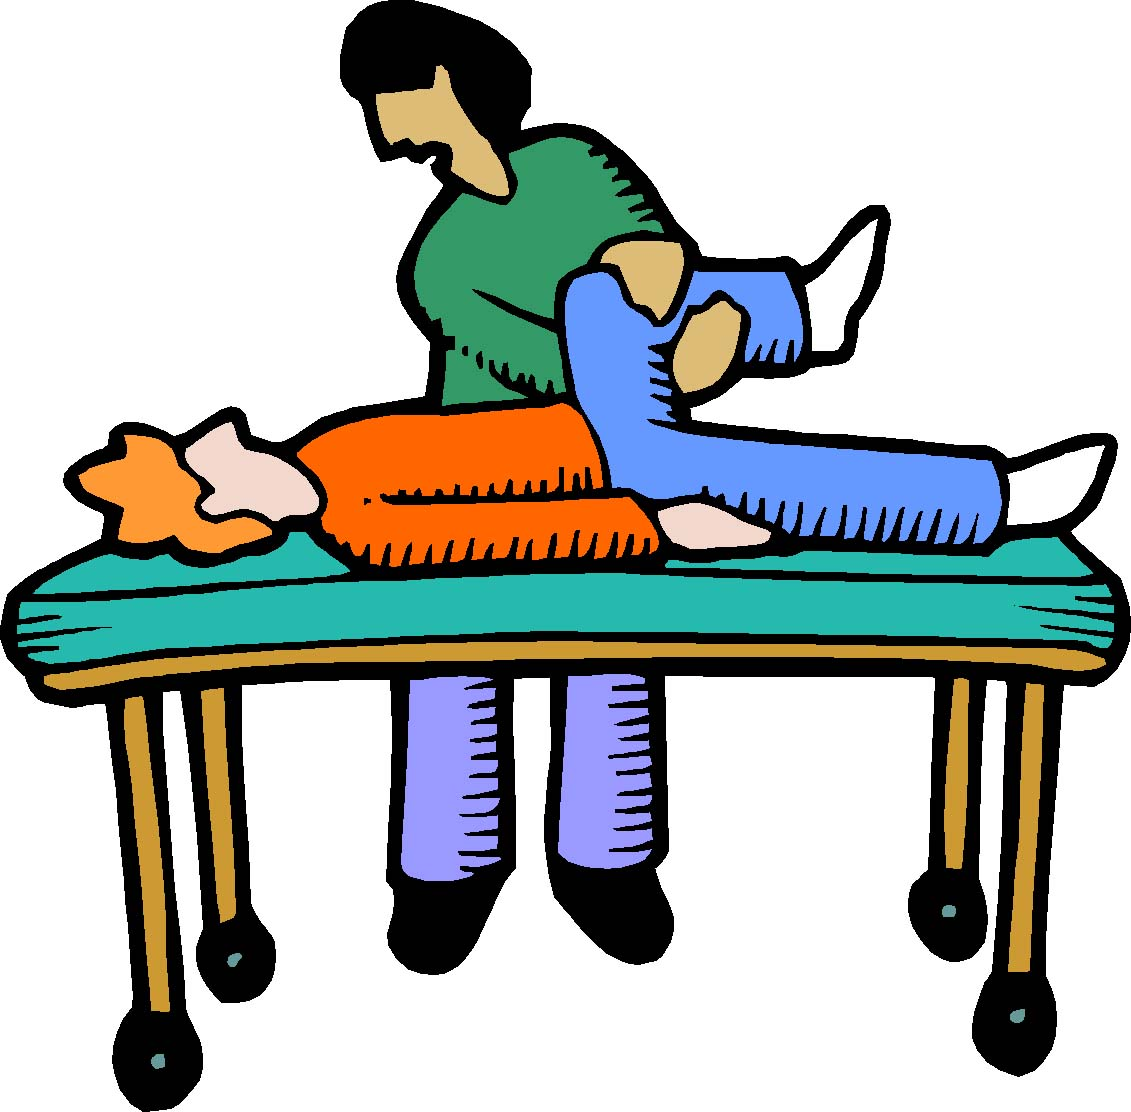 Athlete clipart approach. Physical therapy archives legacy